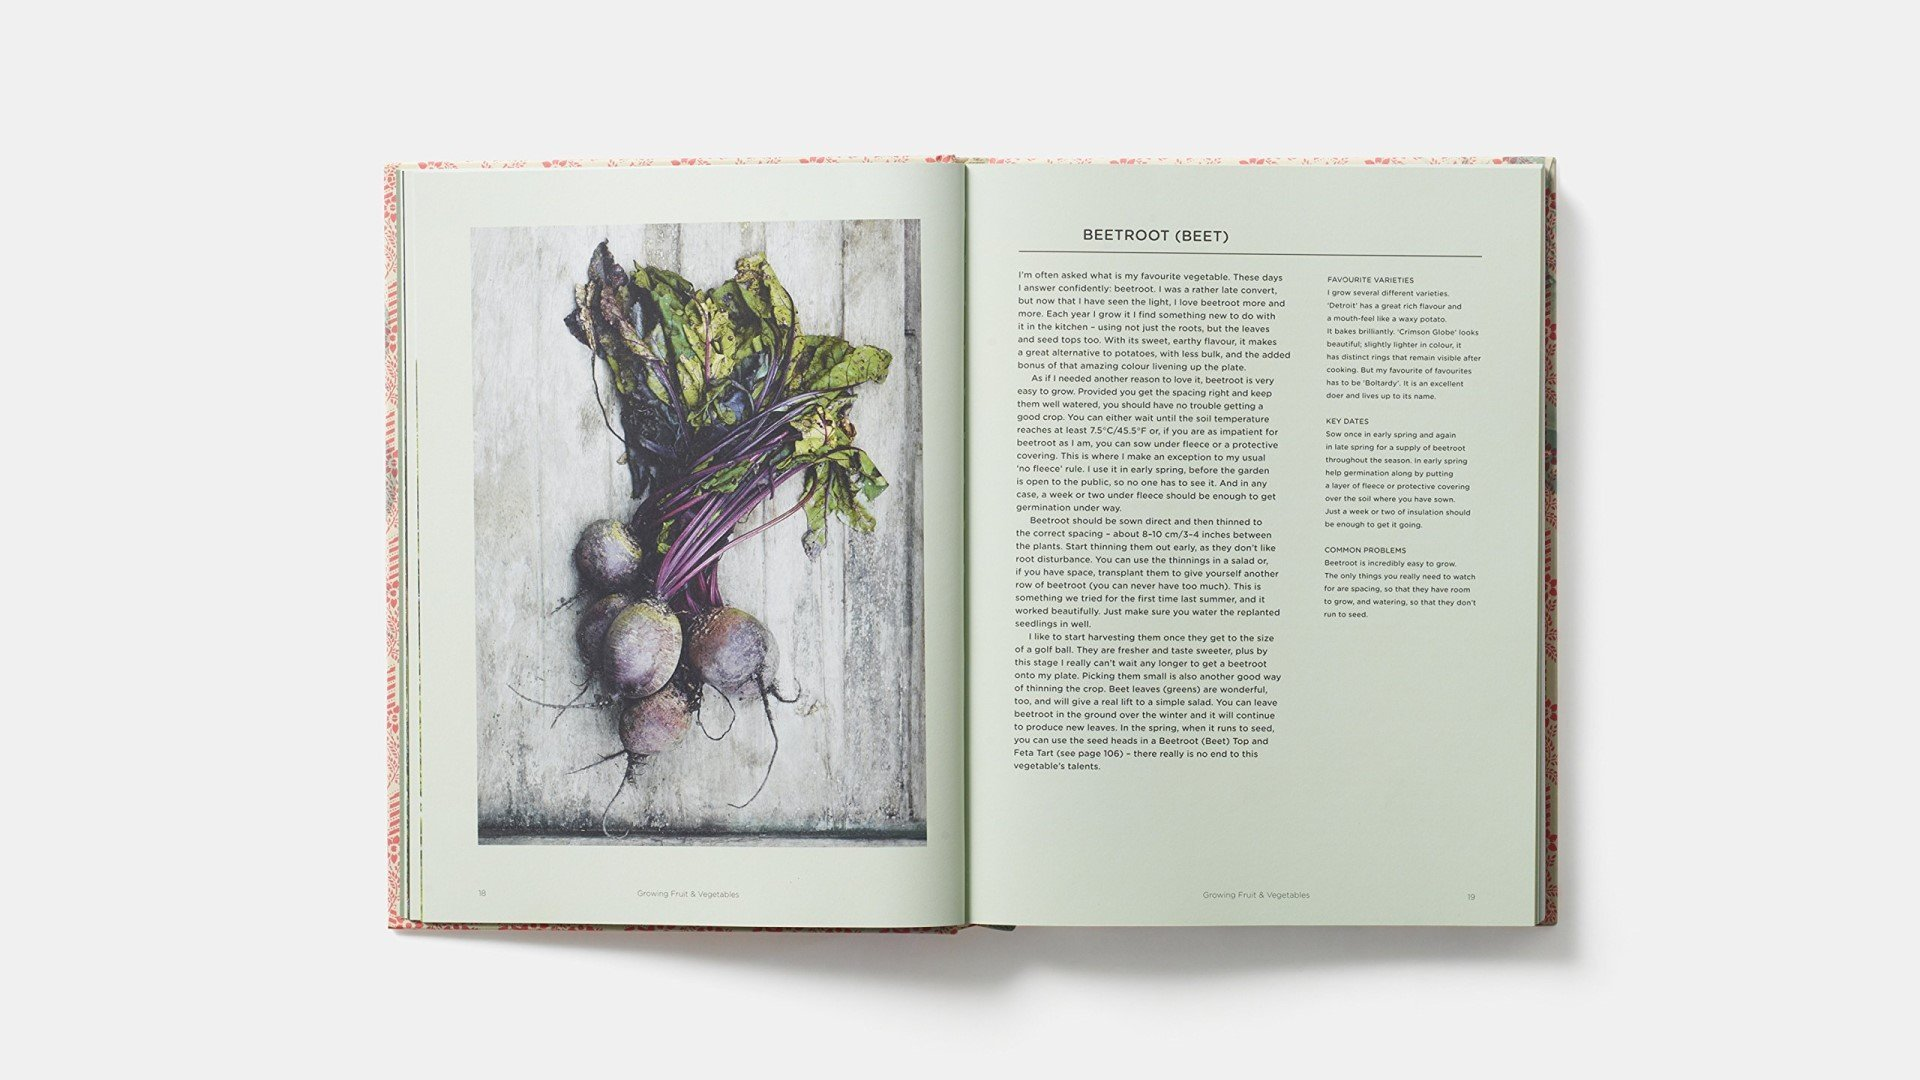 The Great Dixter Cookbook: Recipes from an English Garden. Image Gallery 02